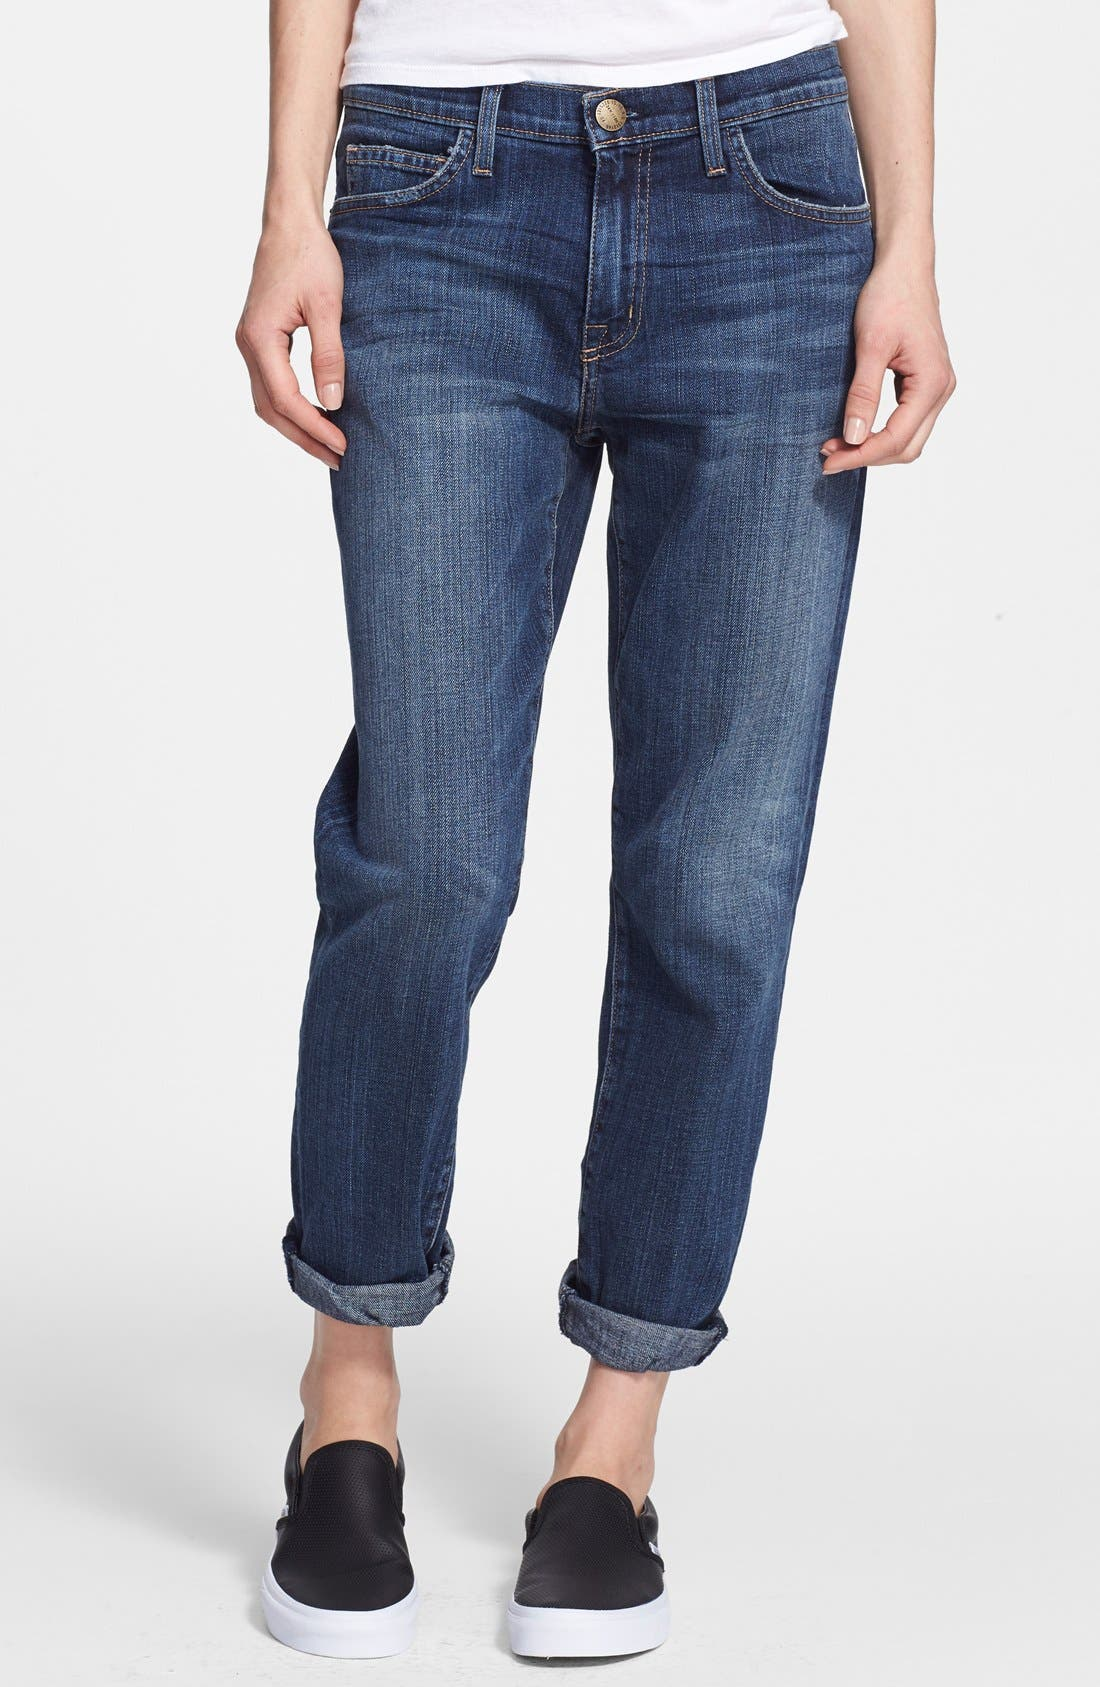 CURRENT/ELLIOTT 'The Fling' Boyfriend Jeans